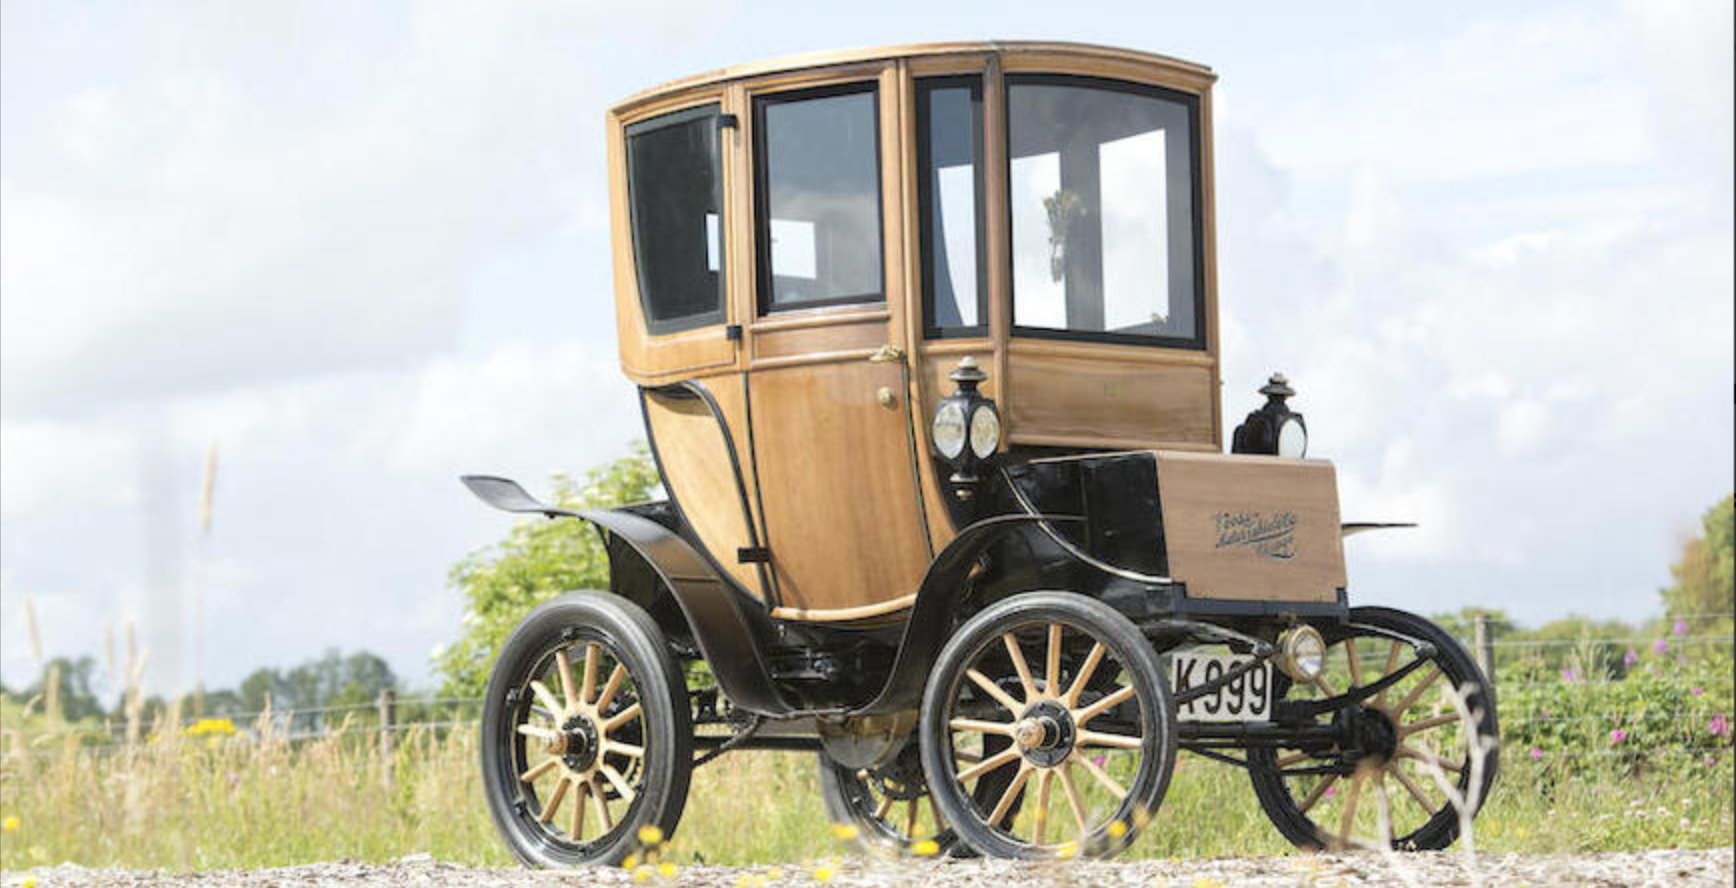 110-Year-Old Electric Car Sells for $US95,000